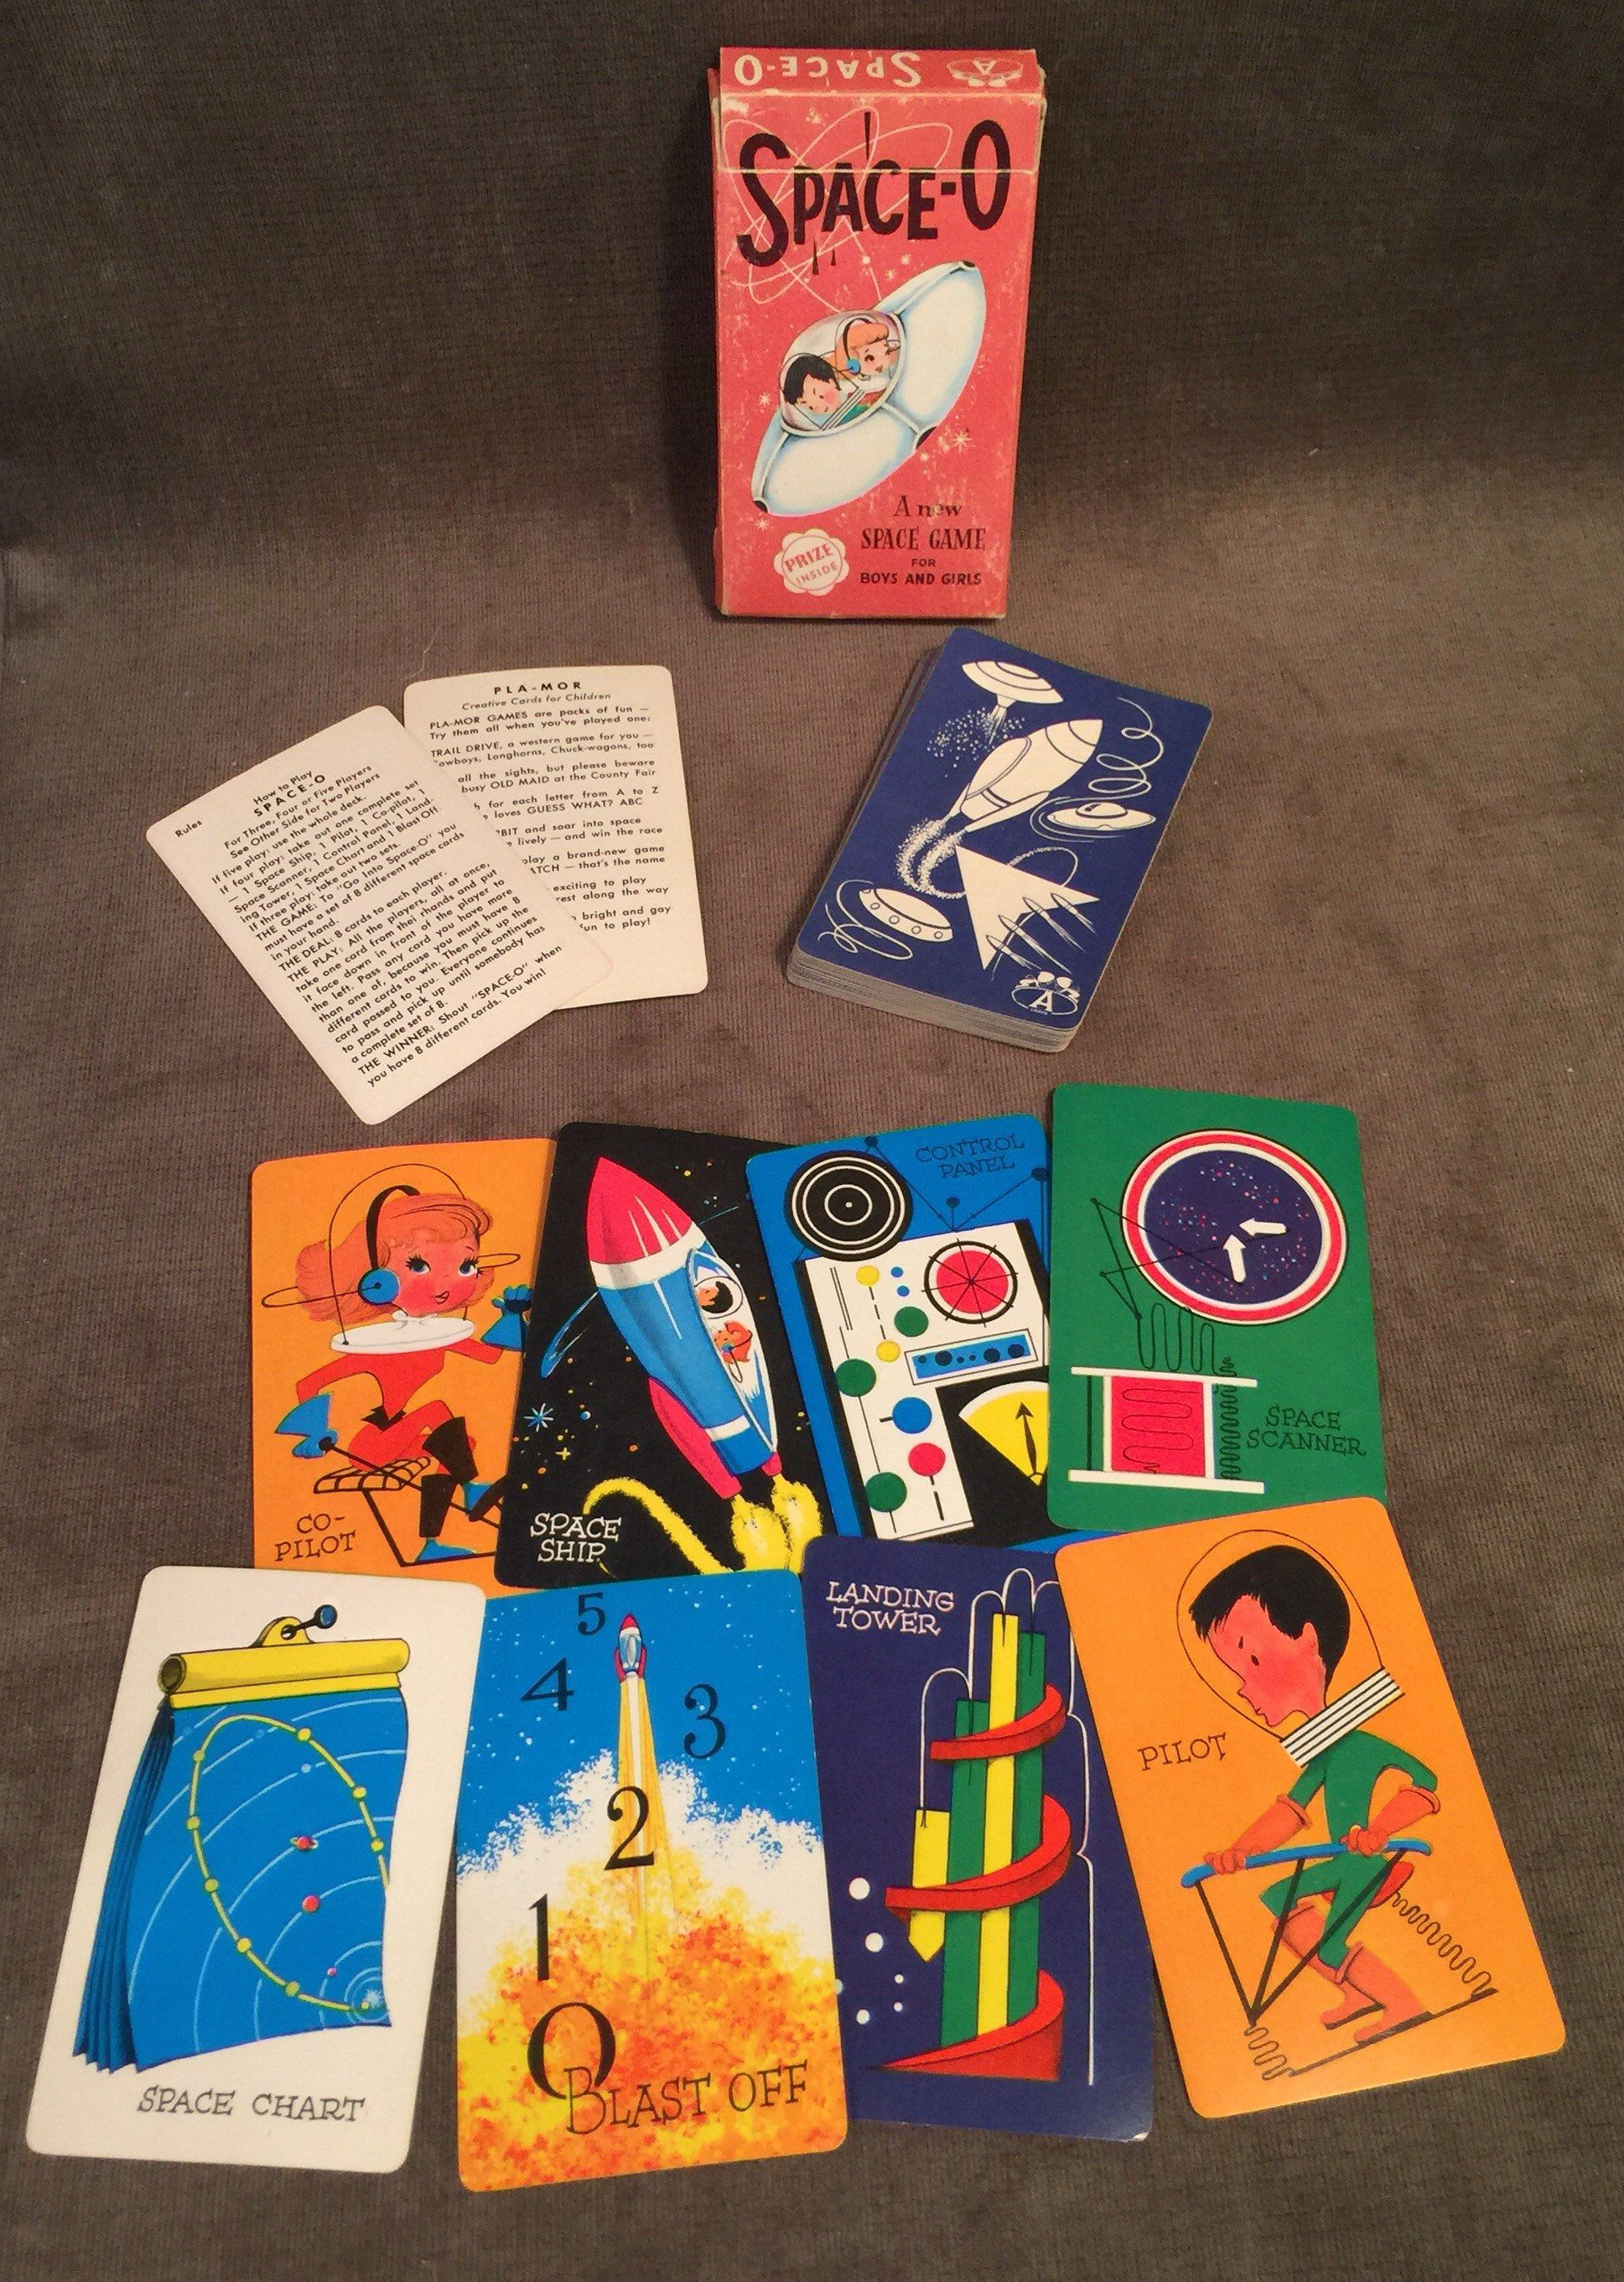 Space O Kids Card Game By Pla Mor Arrco Playing Card Co Etsy Card Games For Kids Card Games Cards